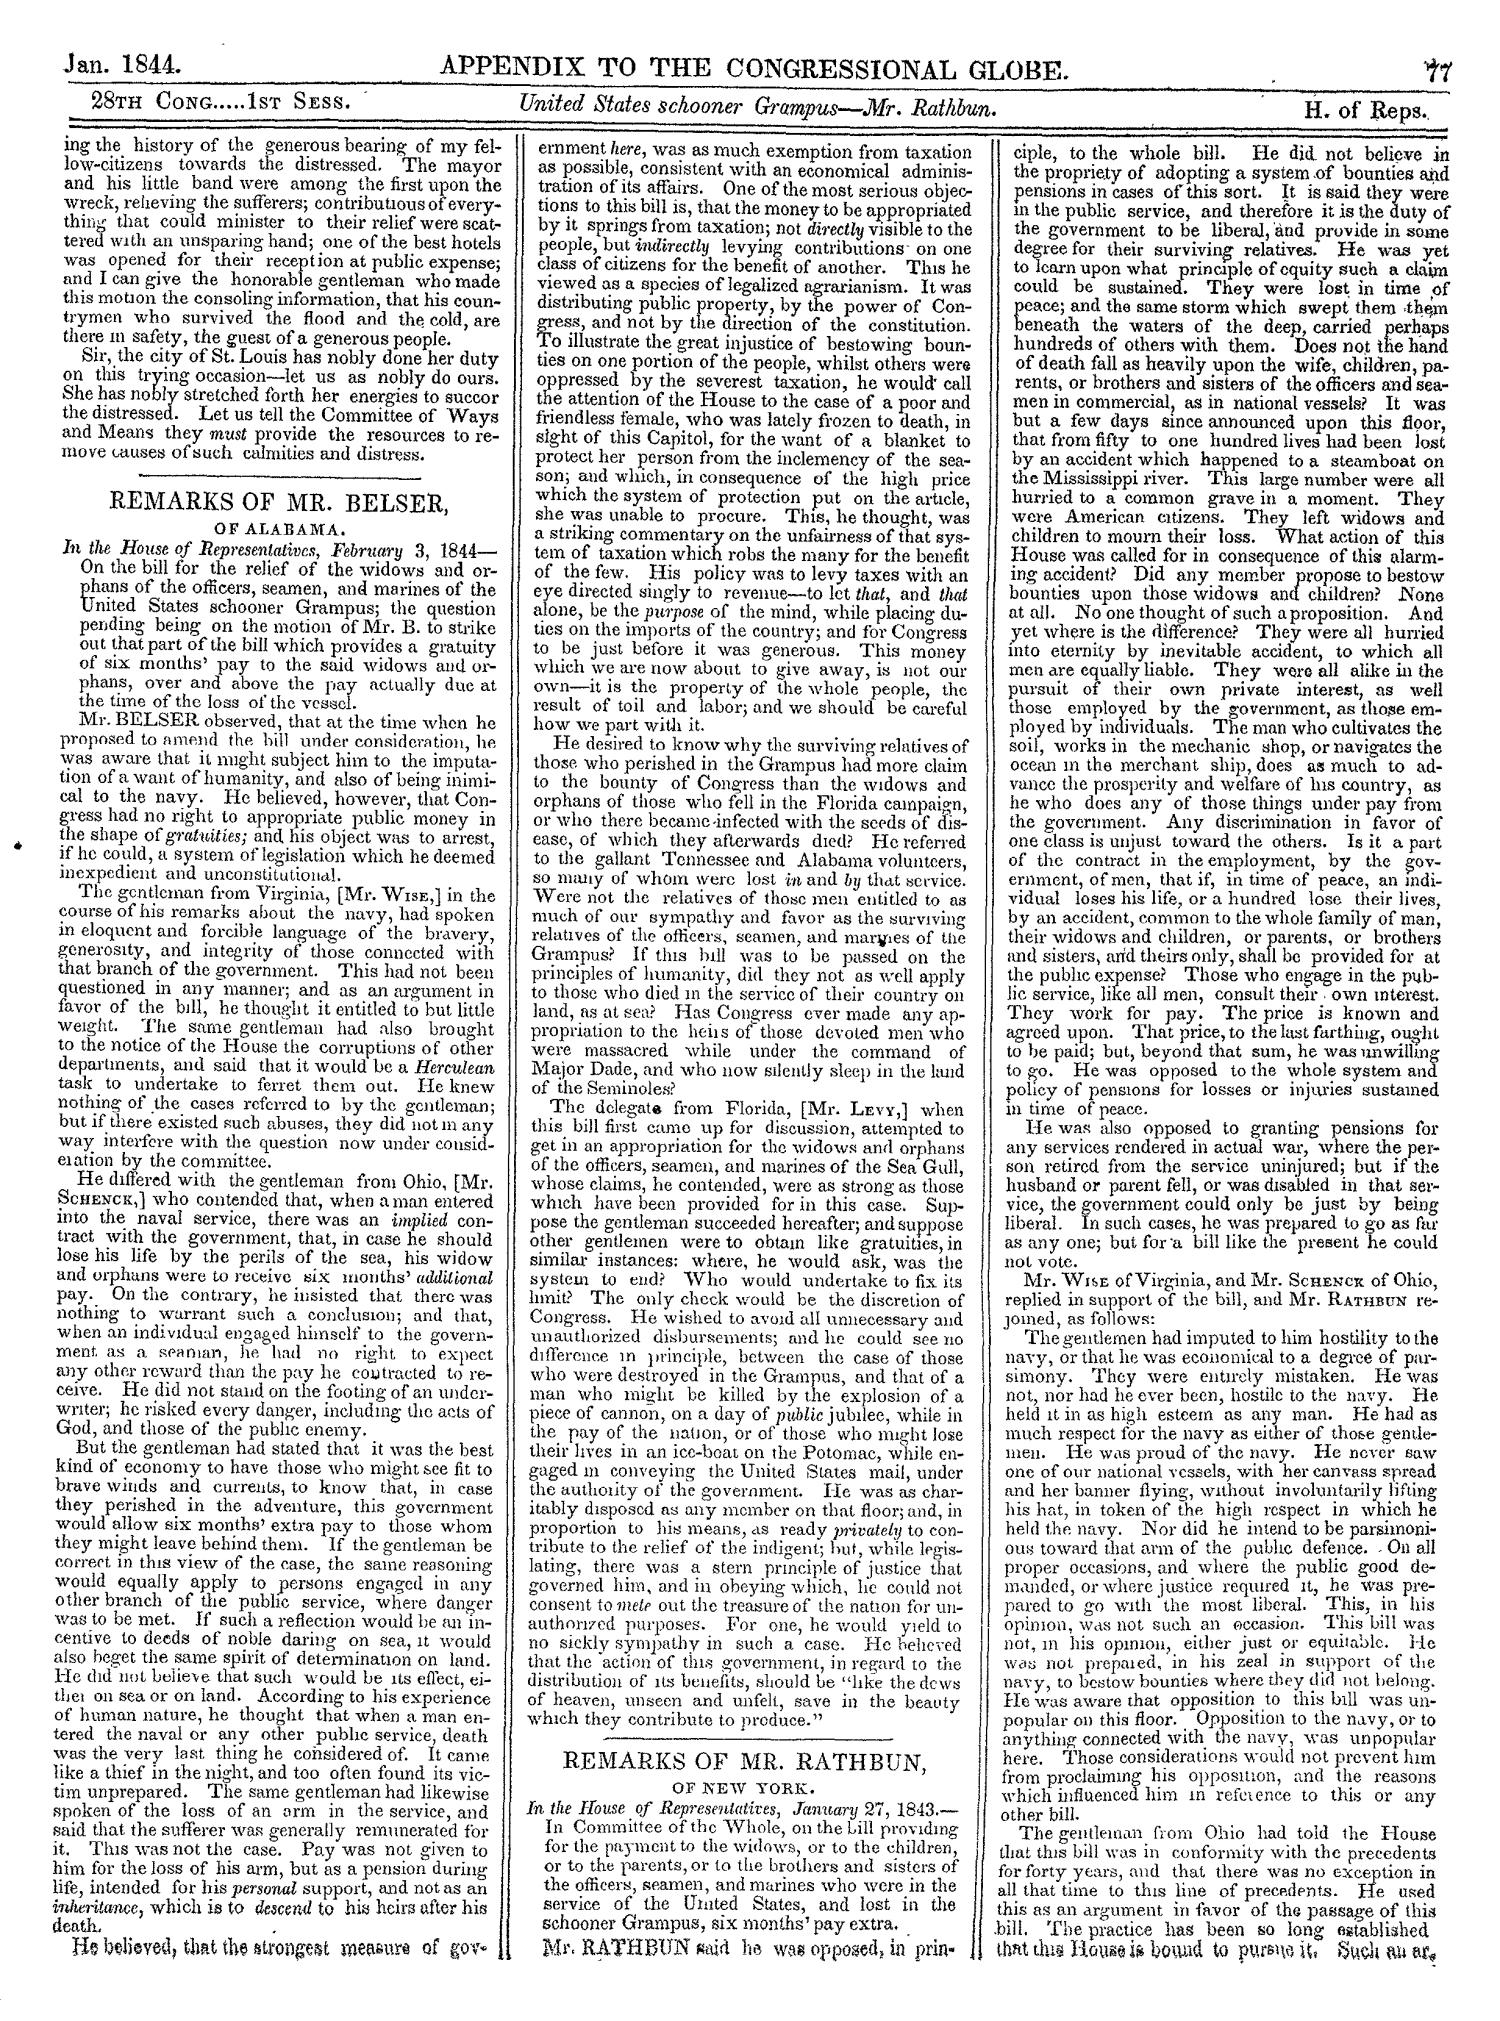 The Congressional Globe, Volume 13, Part 2: Twenty-Eighth Congress, First Session                                                                                                      77